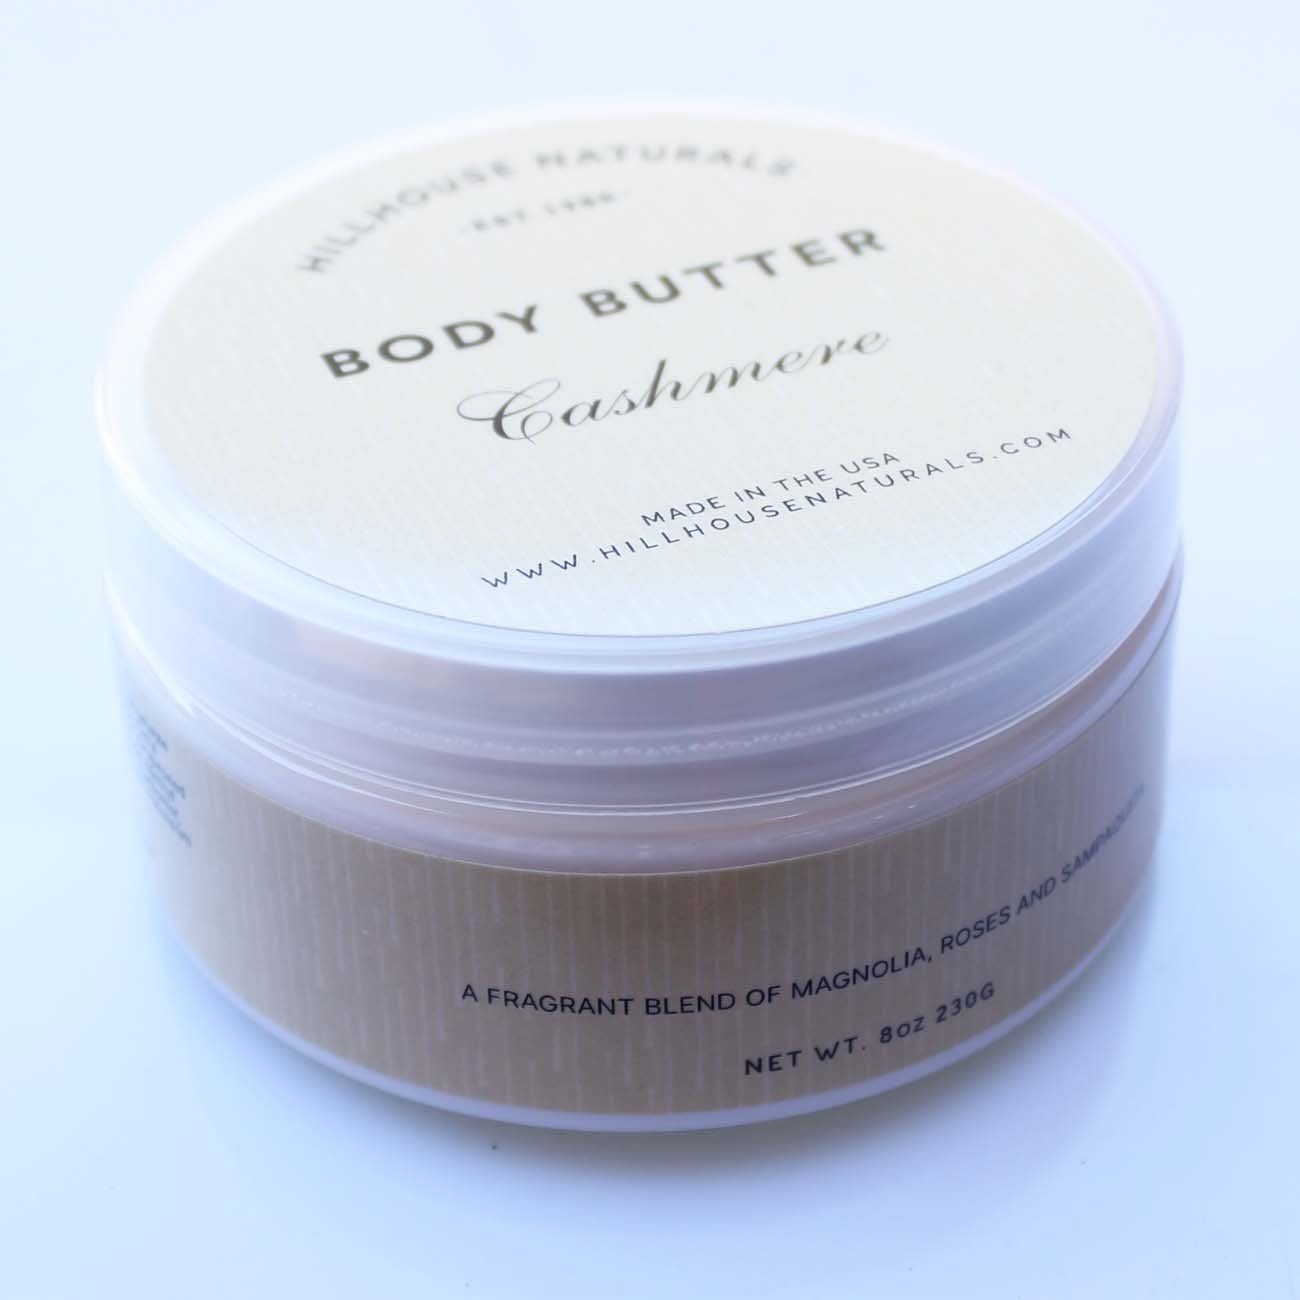 Cashmere Body Butter 8 oz by Hillhouse Naturals